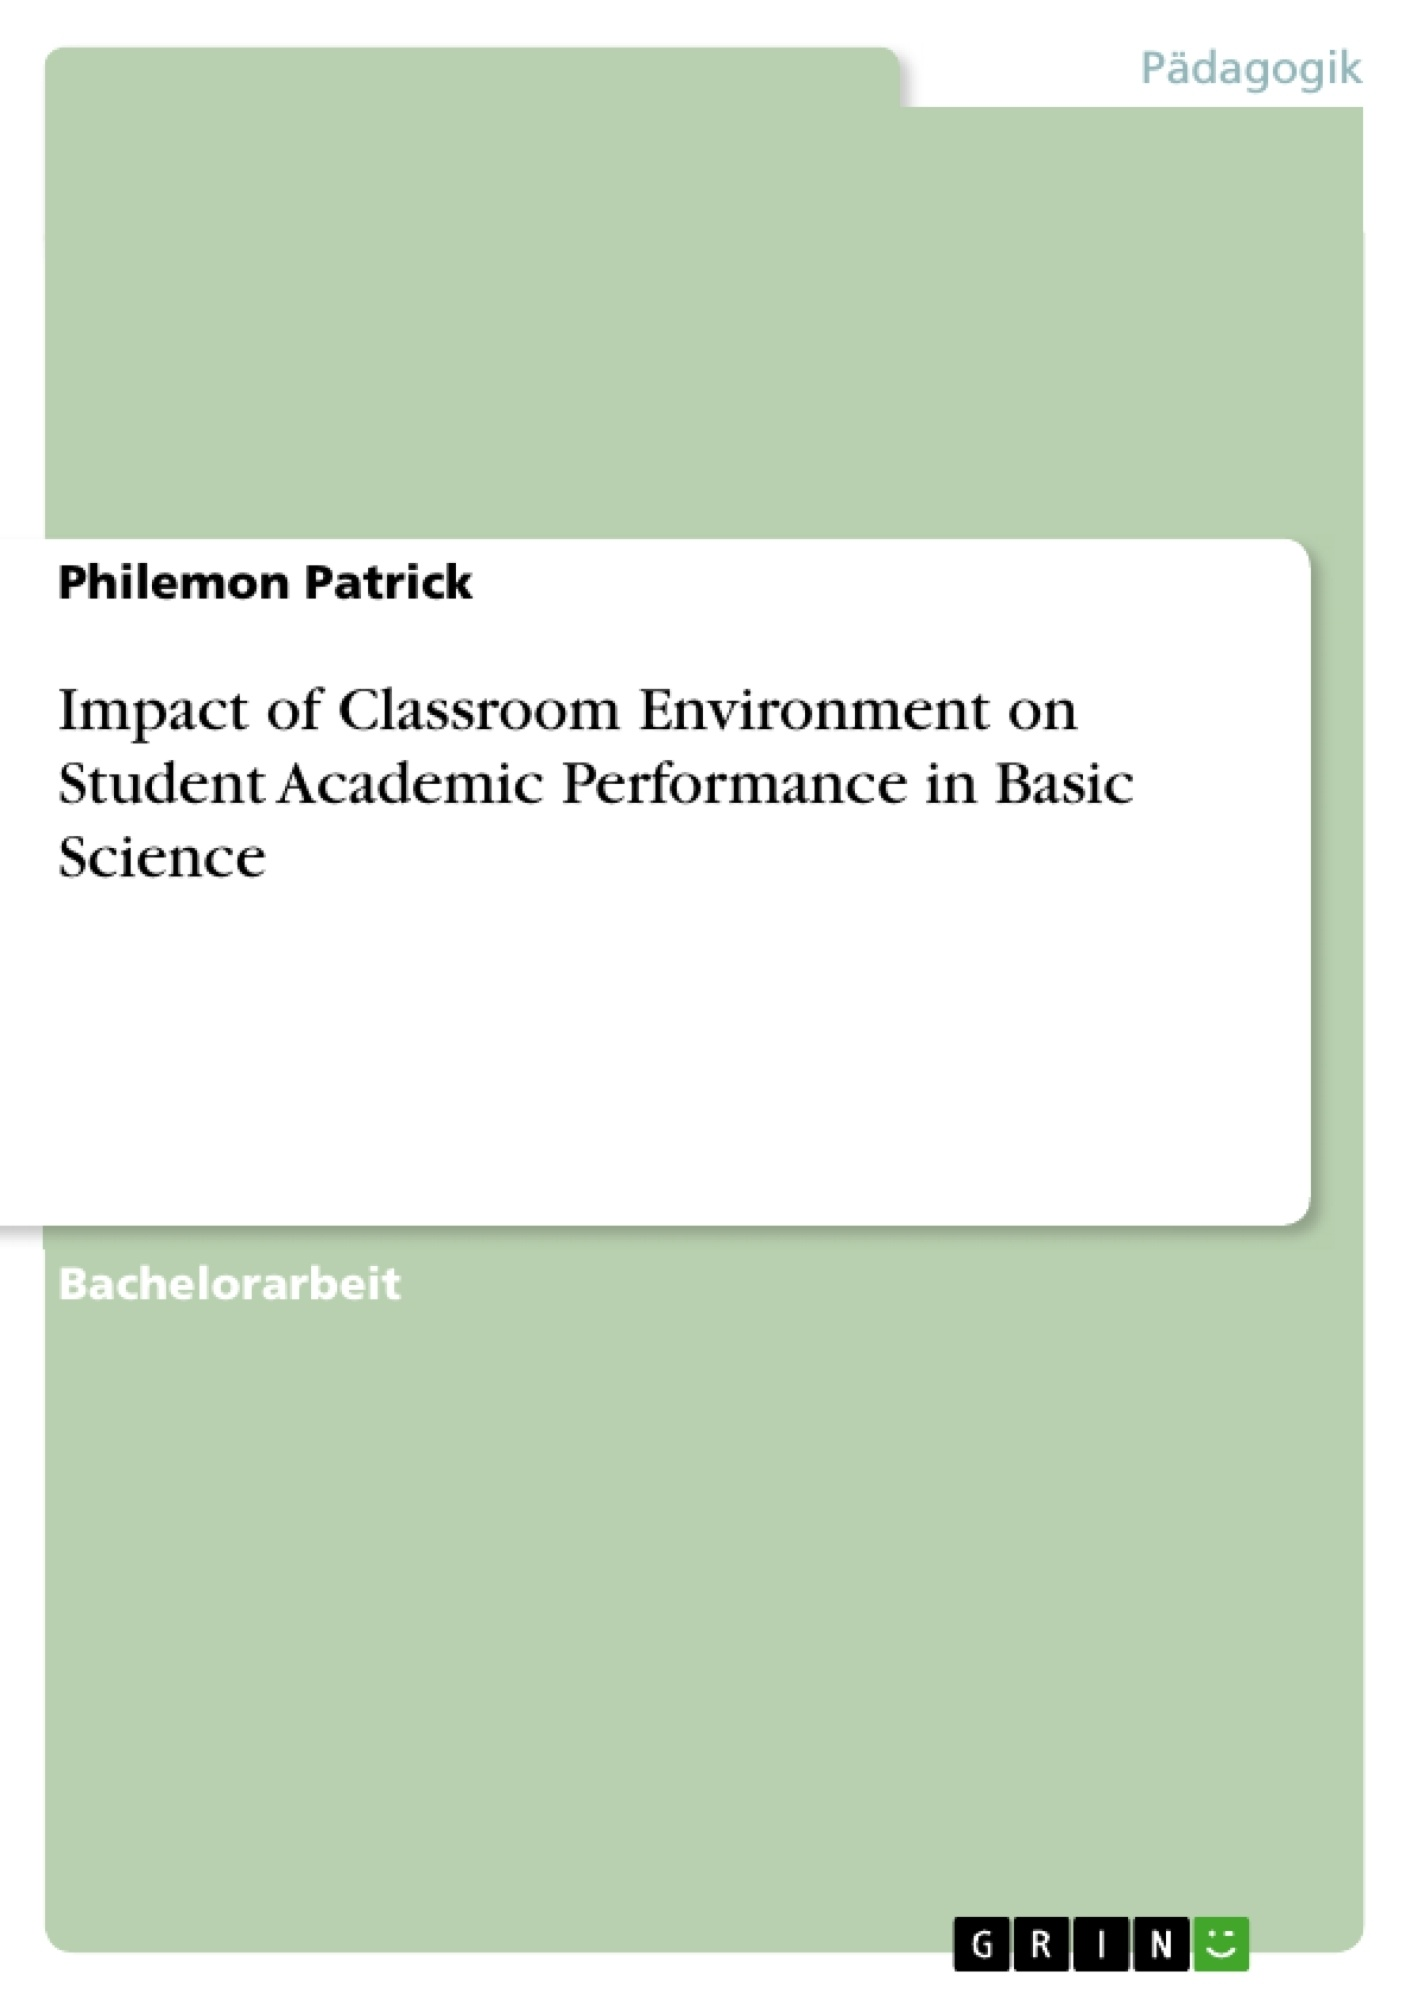 Titel: Impact of Classroom Environment on Student Academic Performance in Basic Science